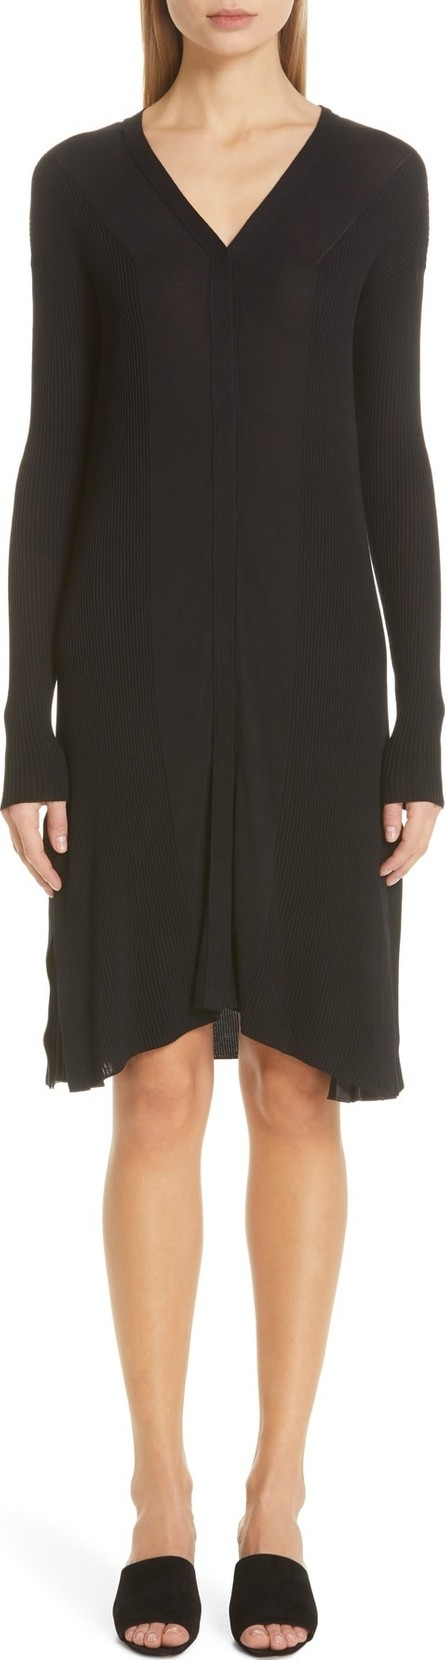 ADEAM Cardigan Dress